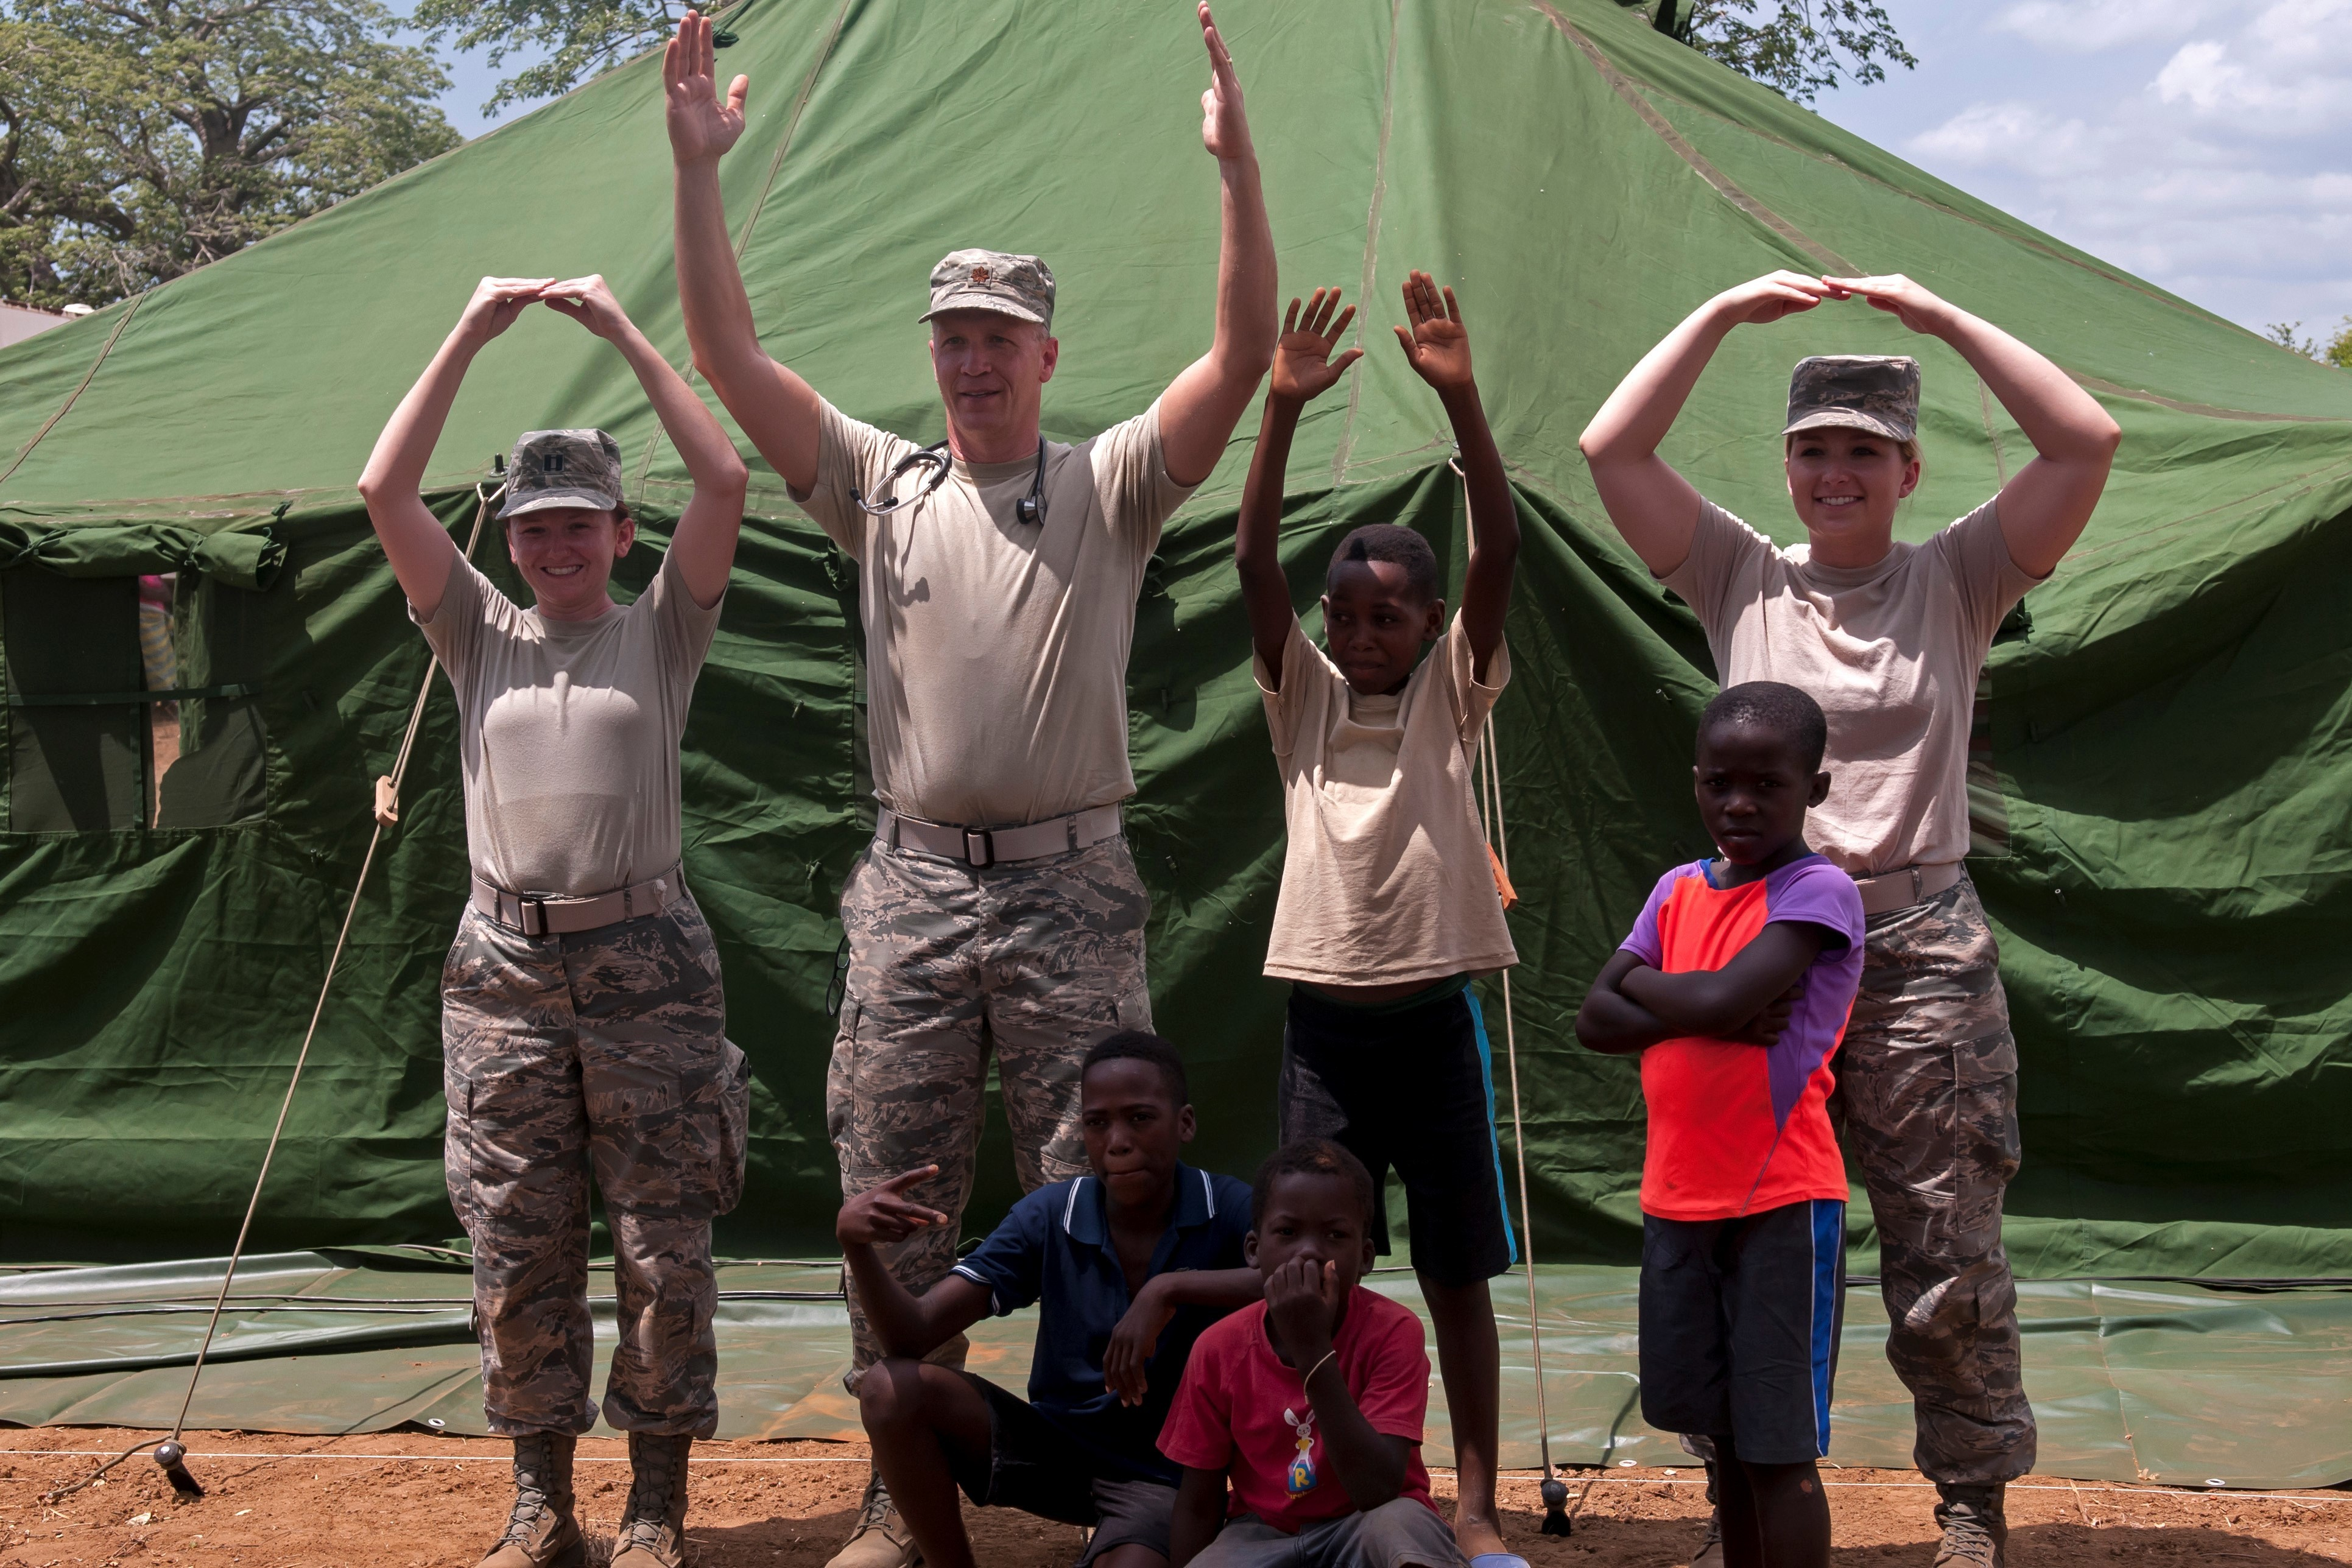 "Ohio Air National Guard members Capt. Sarah Woodson (from left), Maj. Adam Bihl and Senior Airman Hannah Halcomb play with children in the village of Ceramica and show some state pride by forming the ""O-H-I-O""  the PAMBALA 2017 exercise Dec. 13, 2017, in Bengo Province, Angola, Dec. By participating in this trilateral medical engagement alongside the Angolan and Serbian Armed Forces, the Ohio National Guard is gaining real-world experience and training on tropical diseases while also providing valuable coaching and mentorship on disease management and containment. This engagement is the first of its kind to take place in the Republic of Angola and is part of a trilateral agreement between Angola, Serbia and the U.S. (Ohio National Guard photo by Staff Sgt. Wendy Kuhn)"